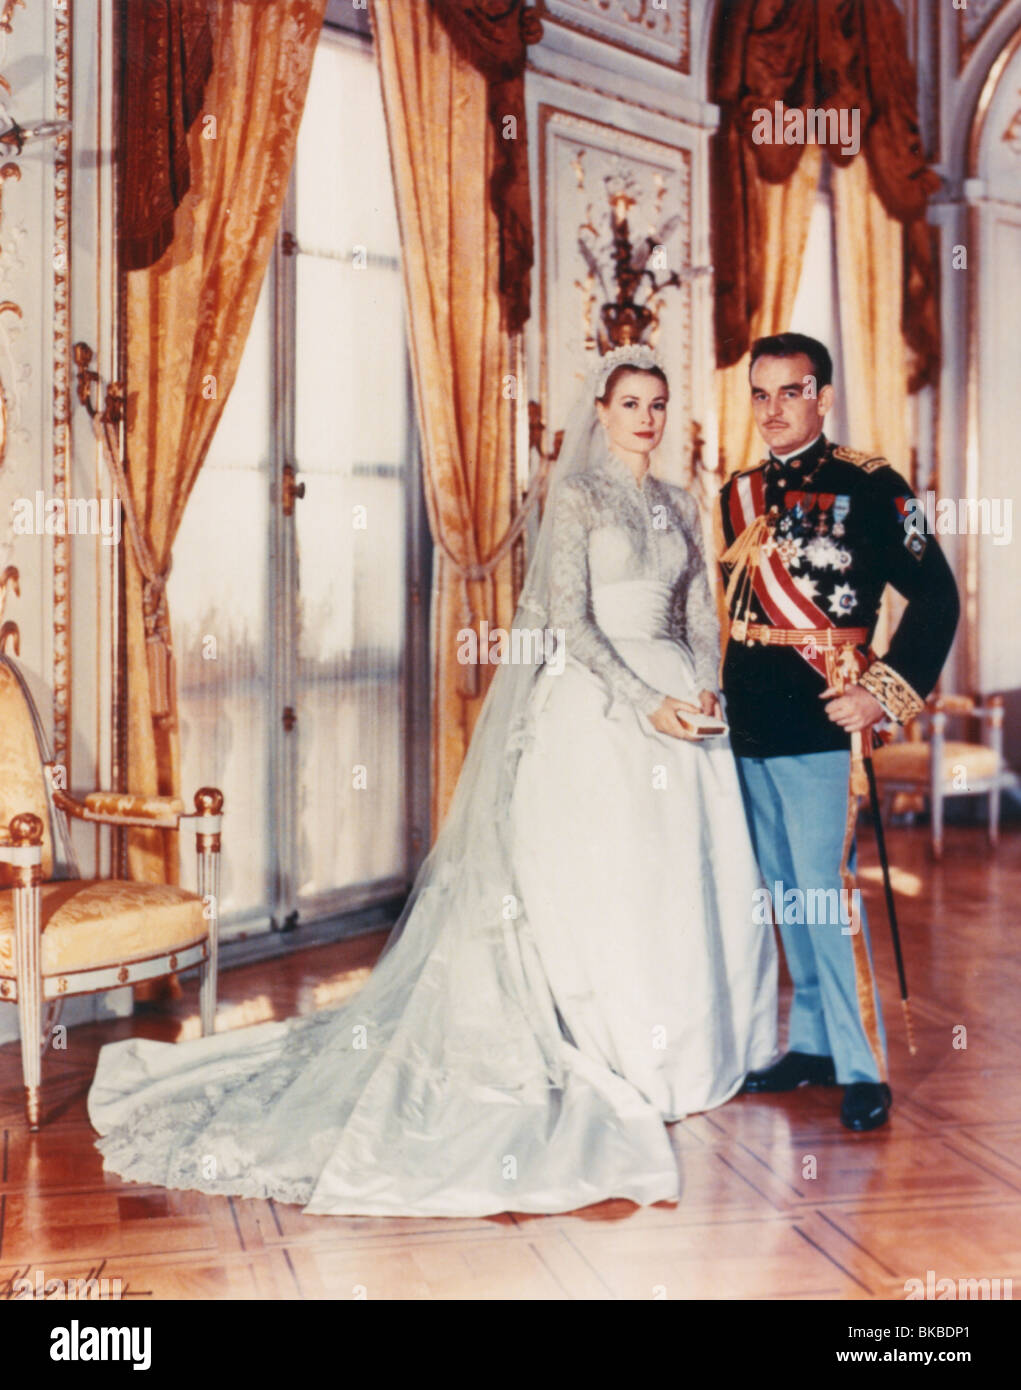 GRACE KELLY PORTRAIT WITH HUSBAND, PRINCE RAINIER OF MONACO GKLY 001 - Stock Image